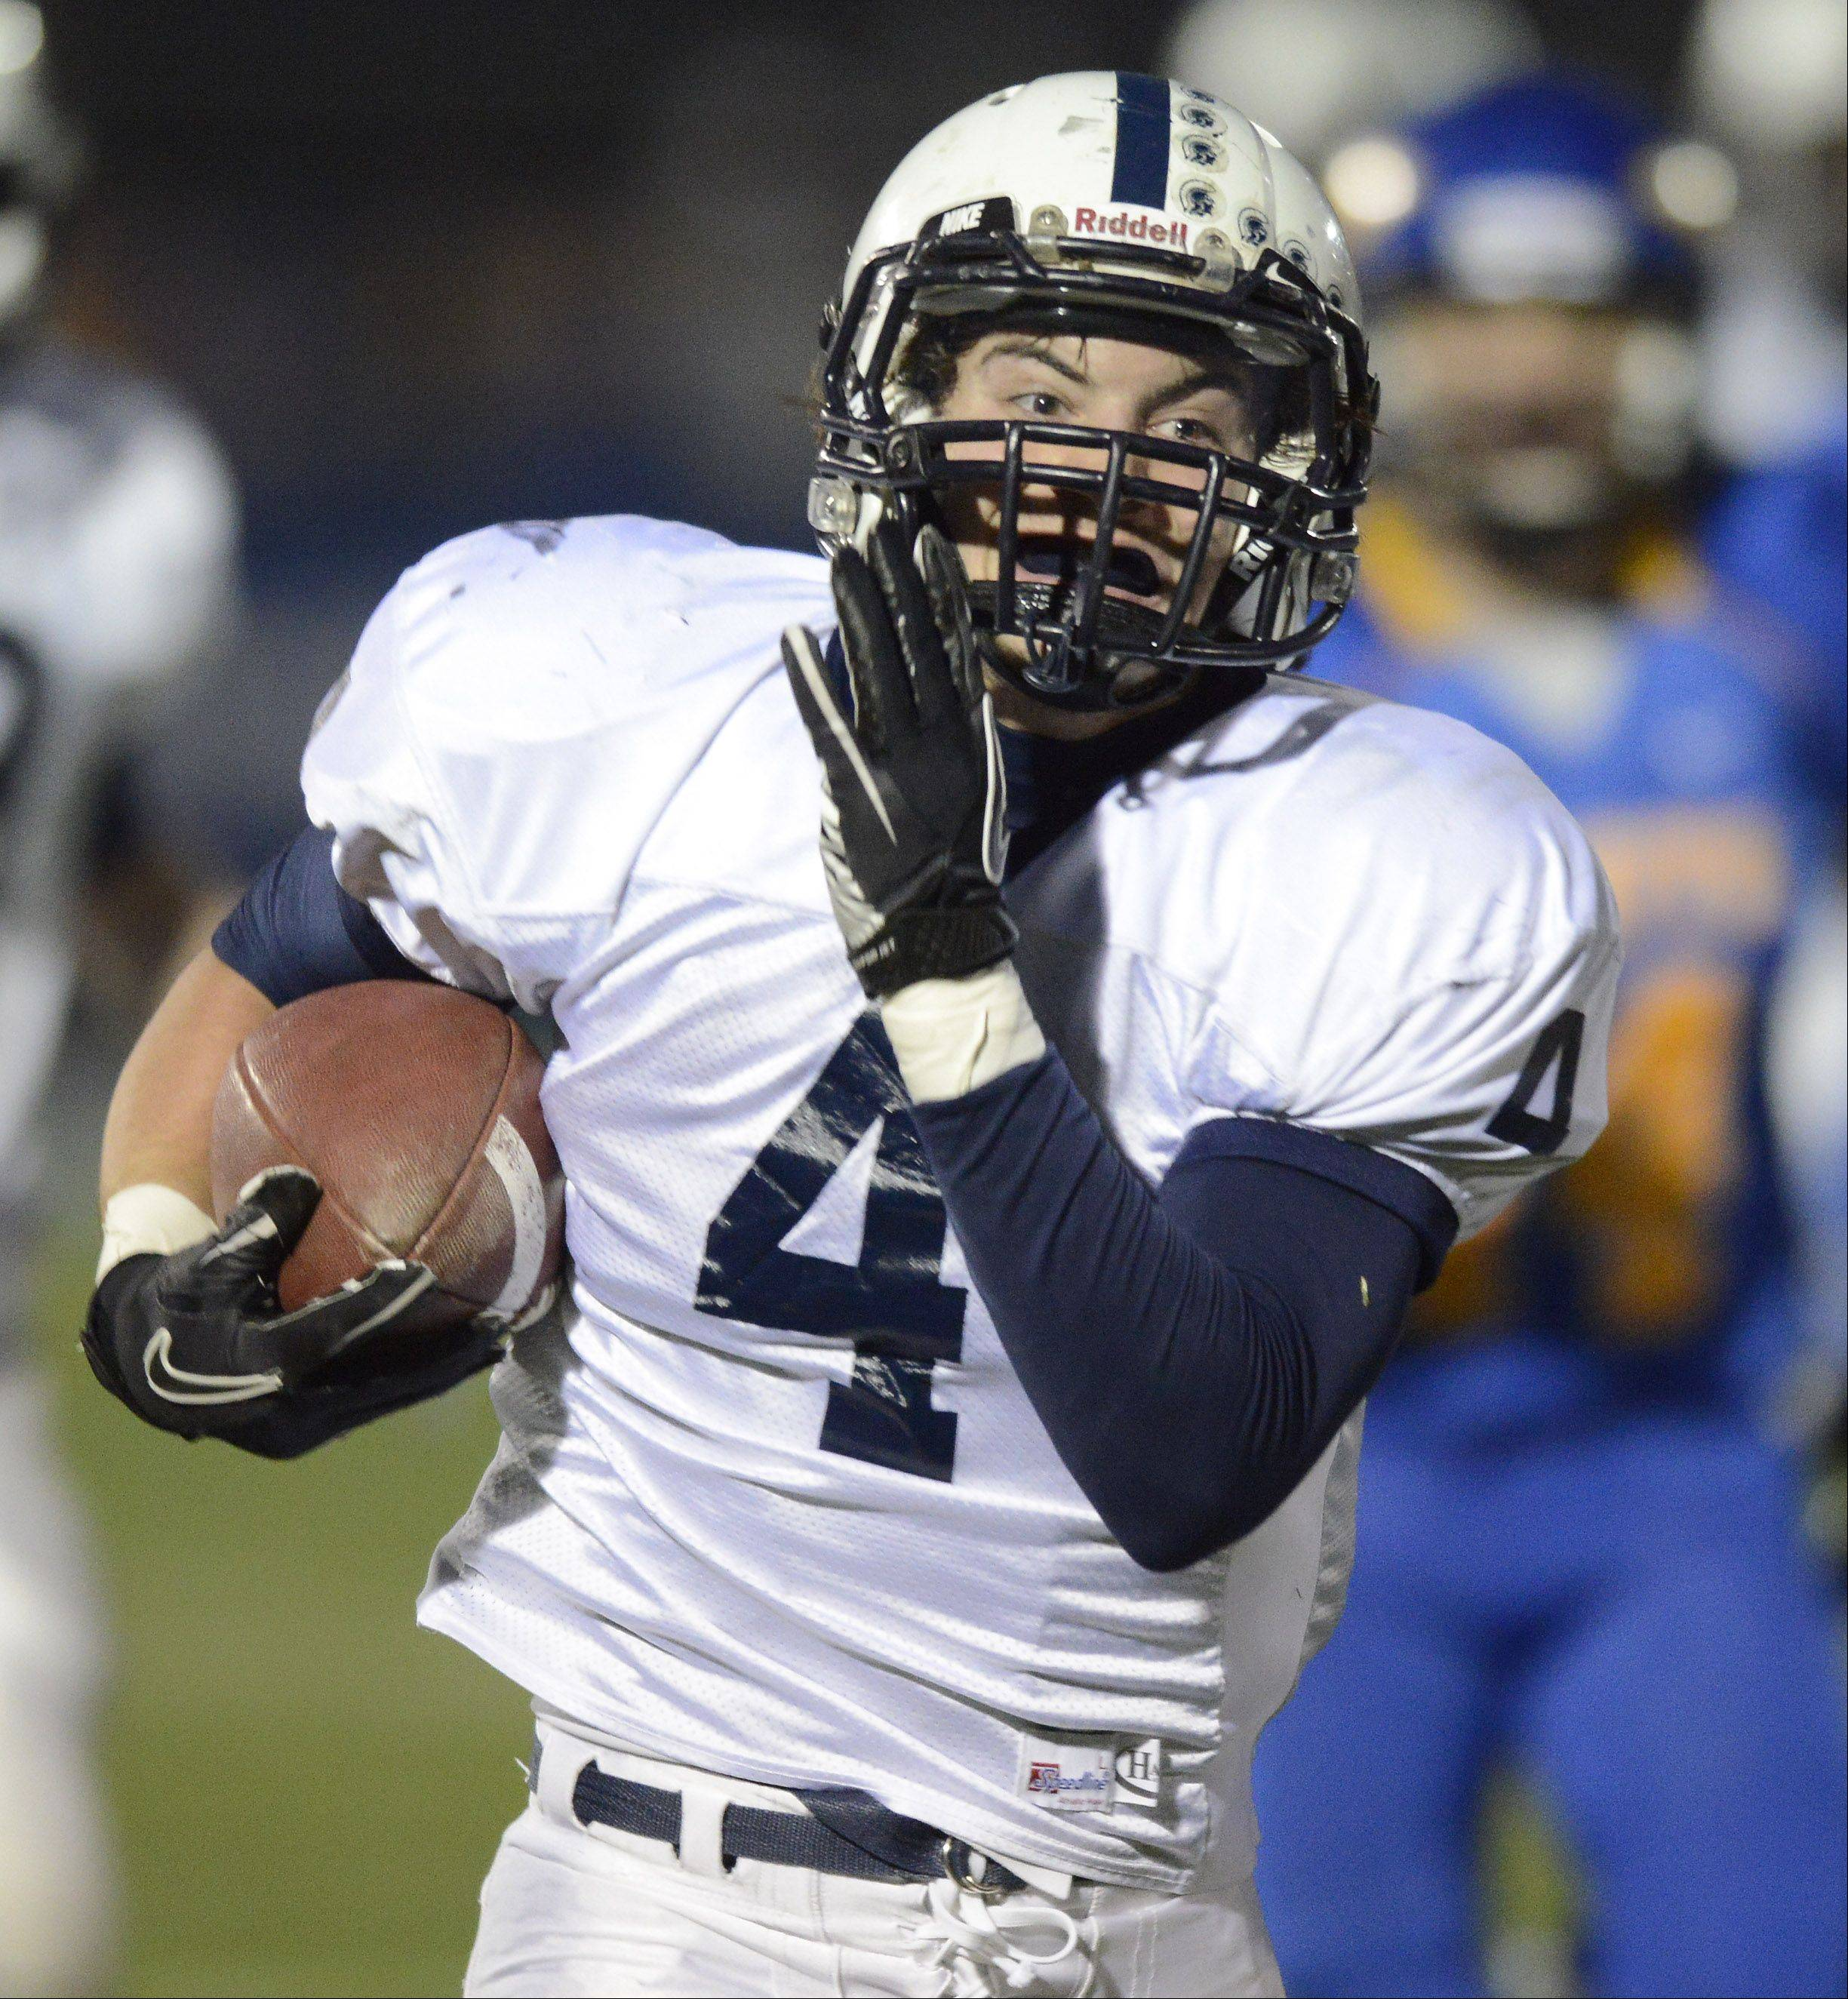 Cary-Grove running back Ryan Mahoney carries the ball against Lake Forest during Saturday's class 6A football semifinal.